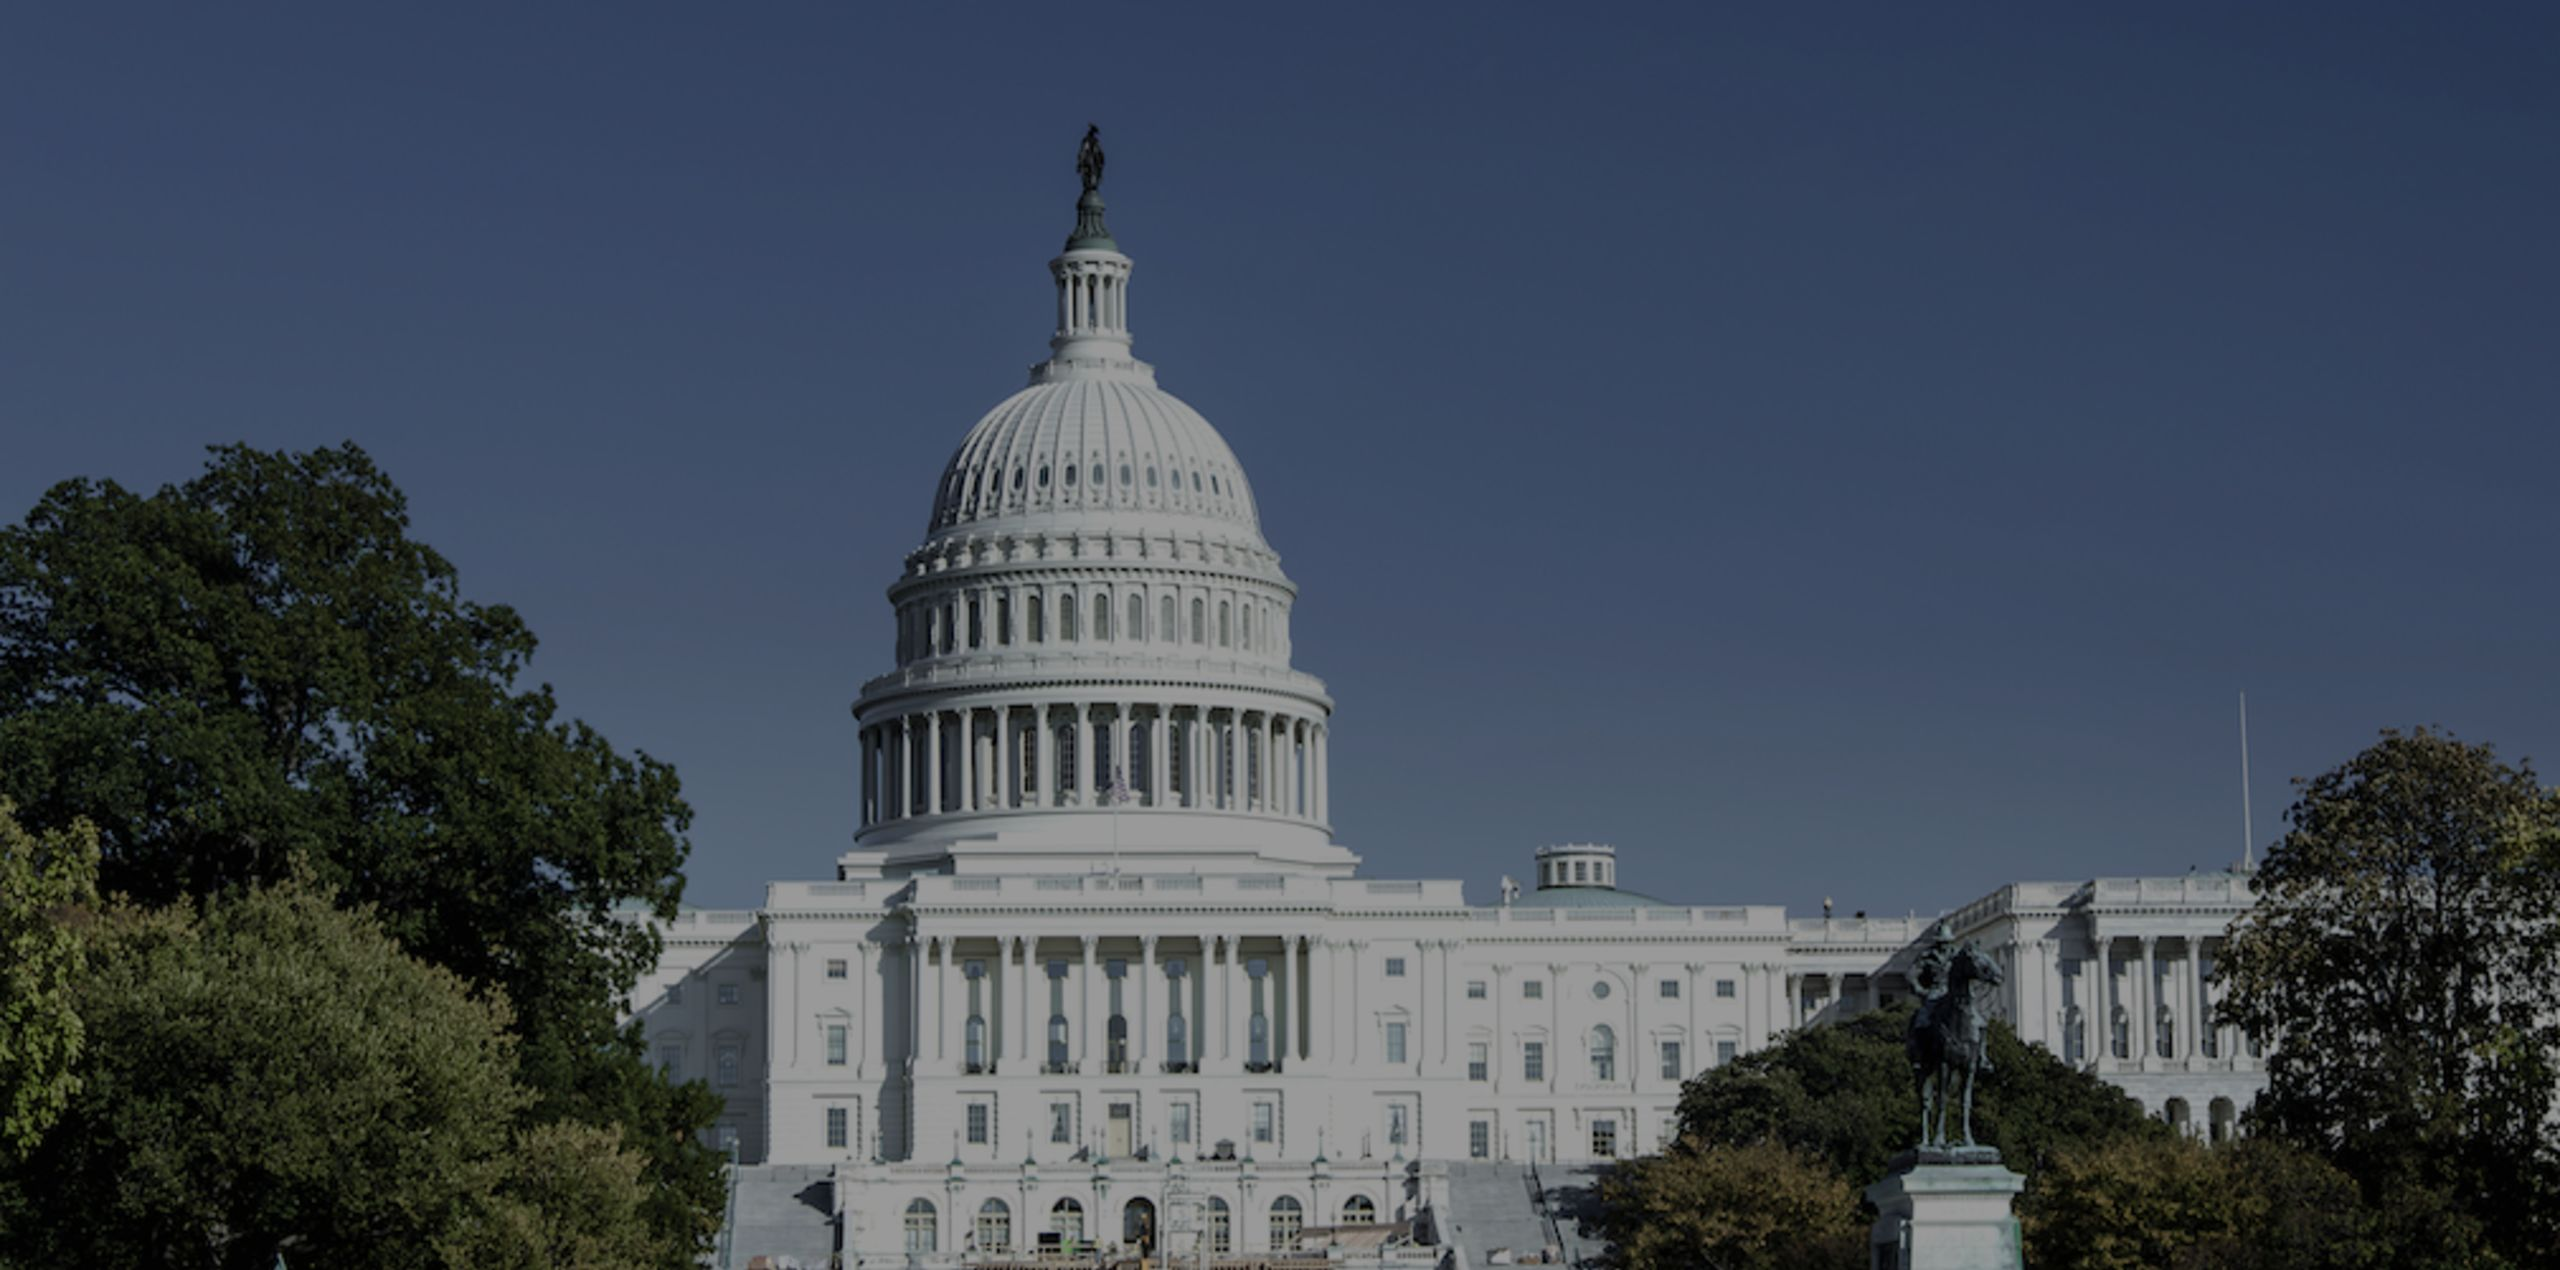 Congress to consider dramatic overhaul of credit reporting